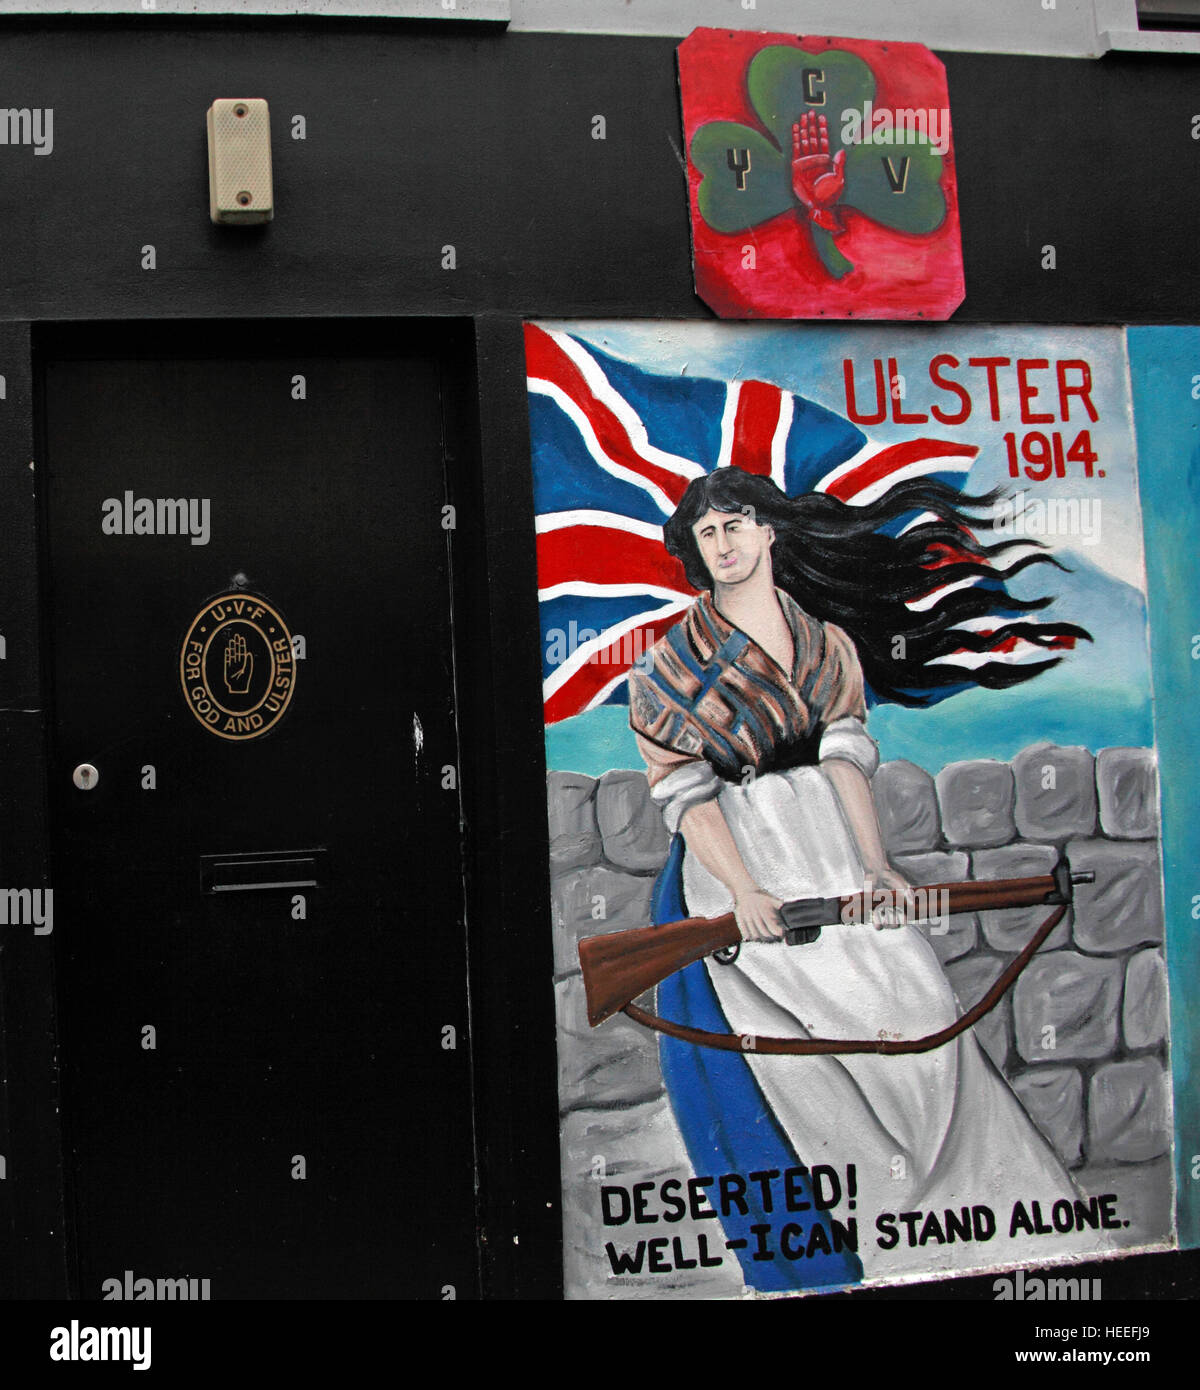 Belfast Unionist, Loyalist Mural Ulster 1914 woman deserted,well I can stand alone! - Stock Image